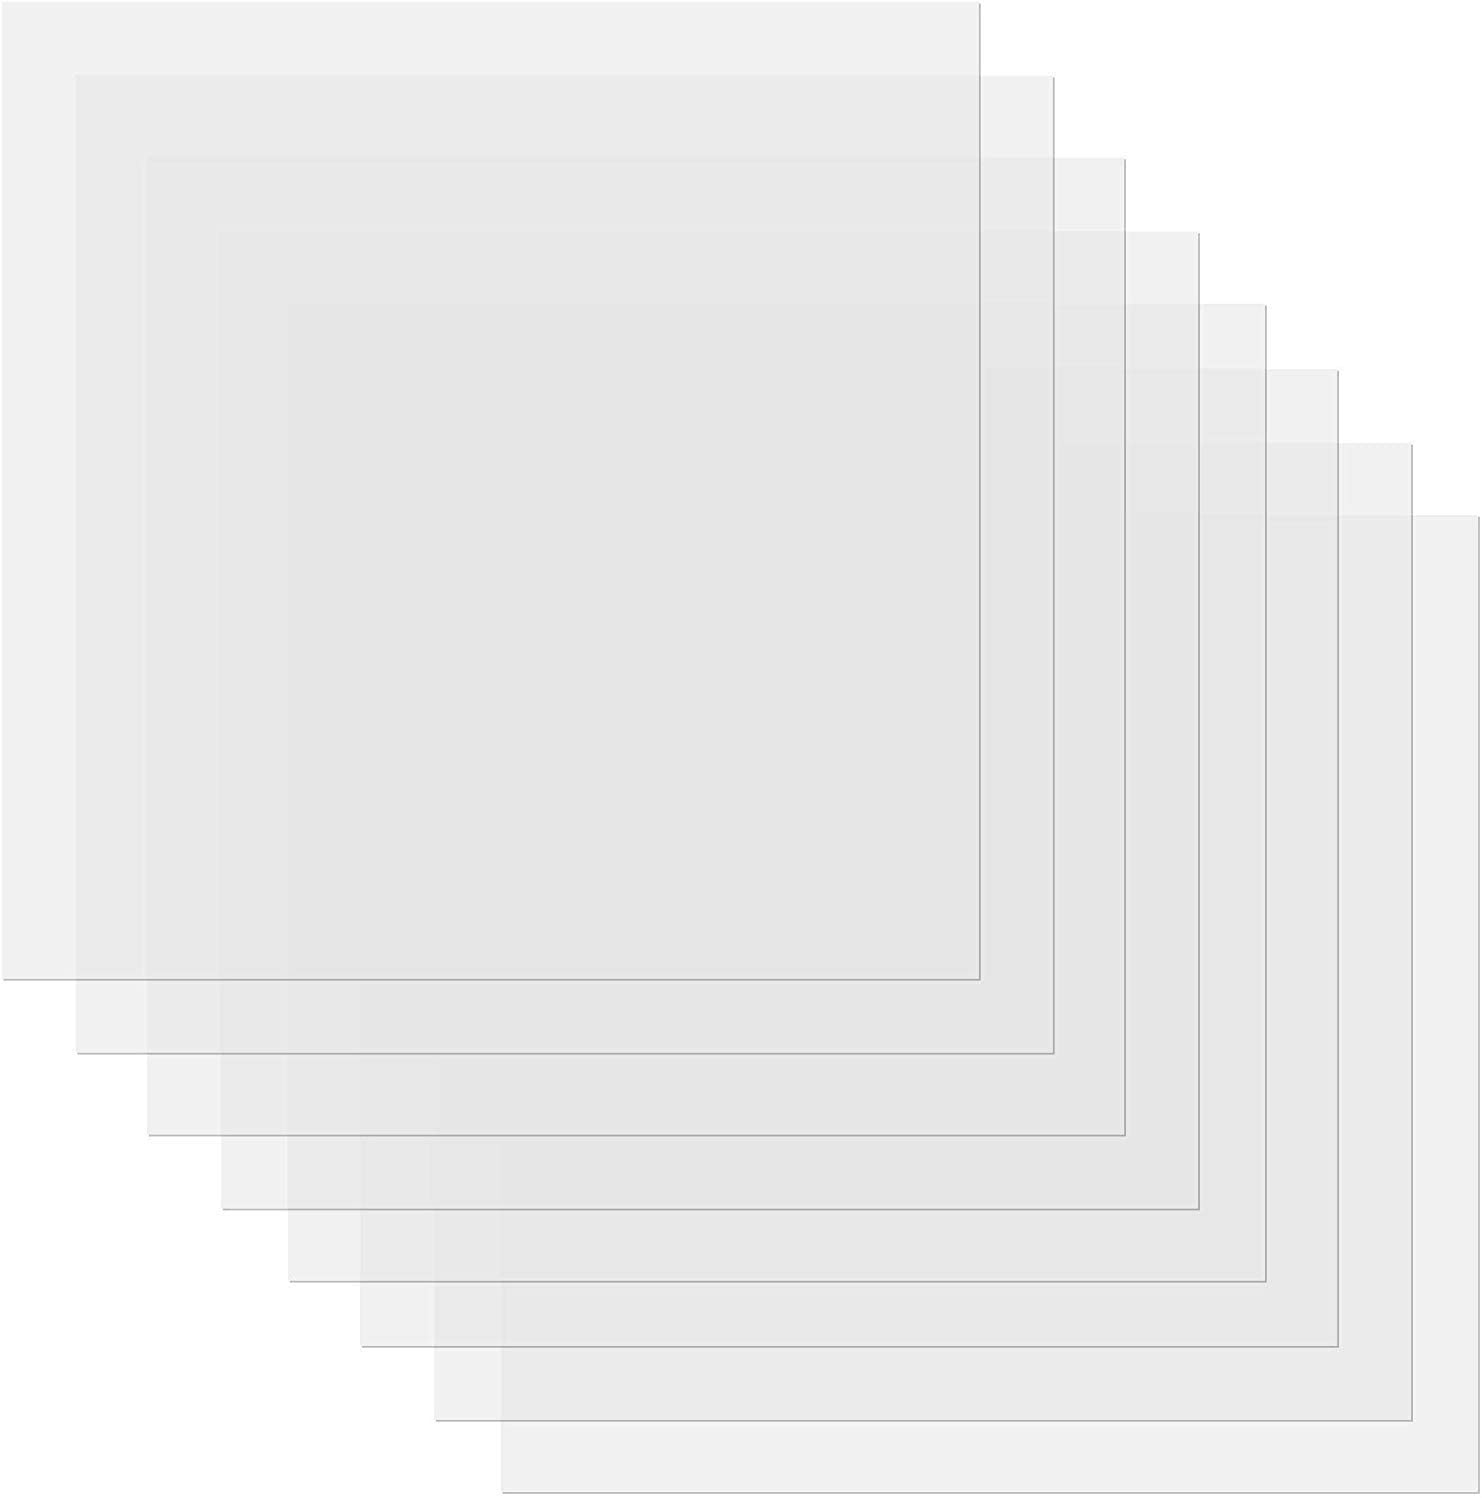 4 mil Clear Stencil Sheets 12 X 12 Inch - 20 Pieces - Craft Plastic, Blank Mylar Templates, Square Blank Stencil Material Mylar Template Sheets for Stencils